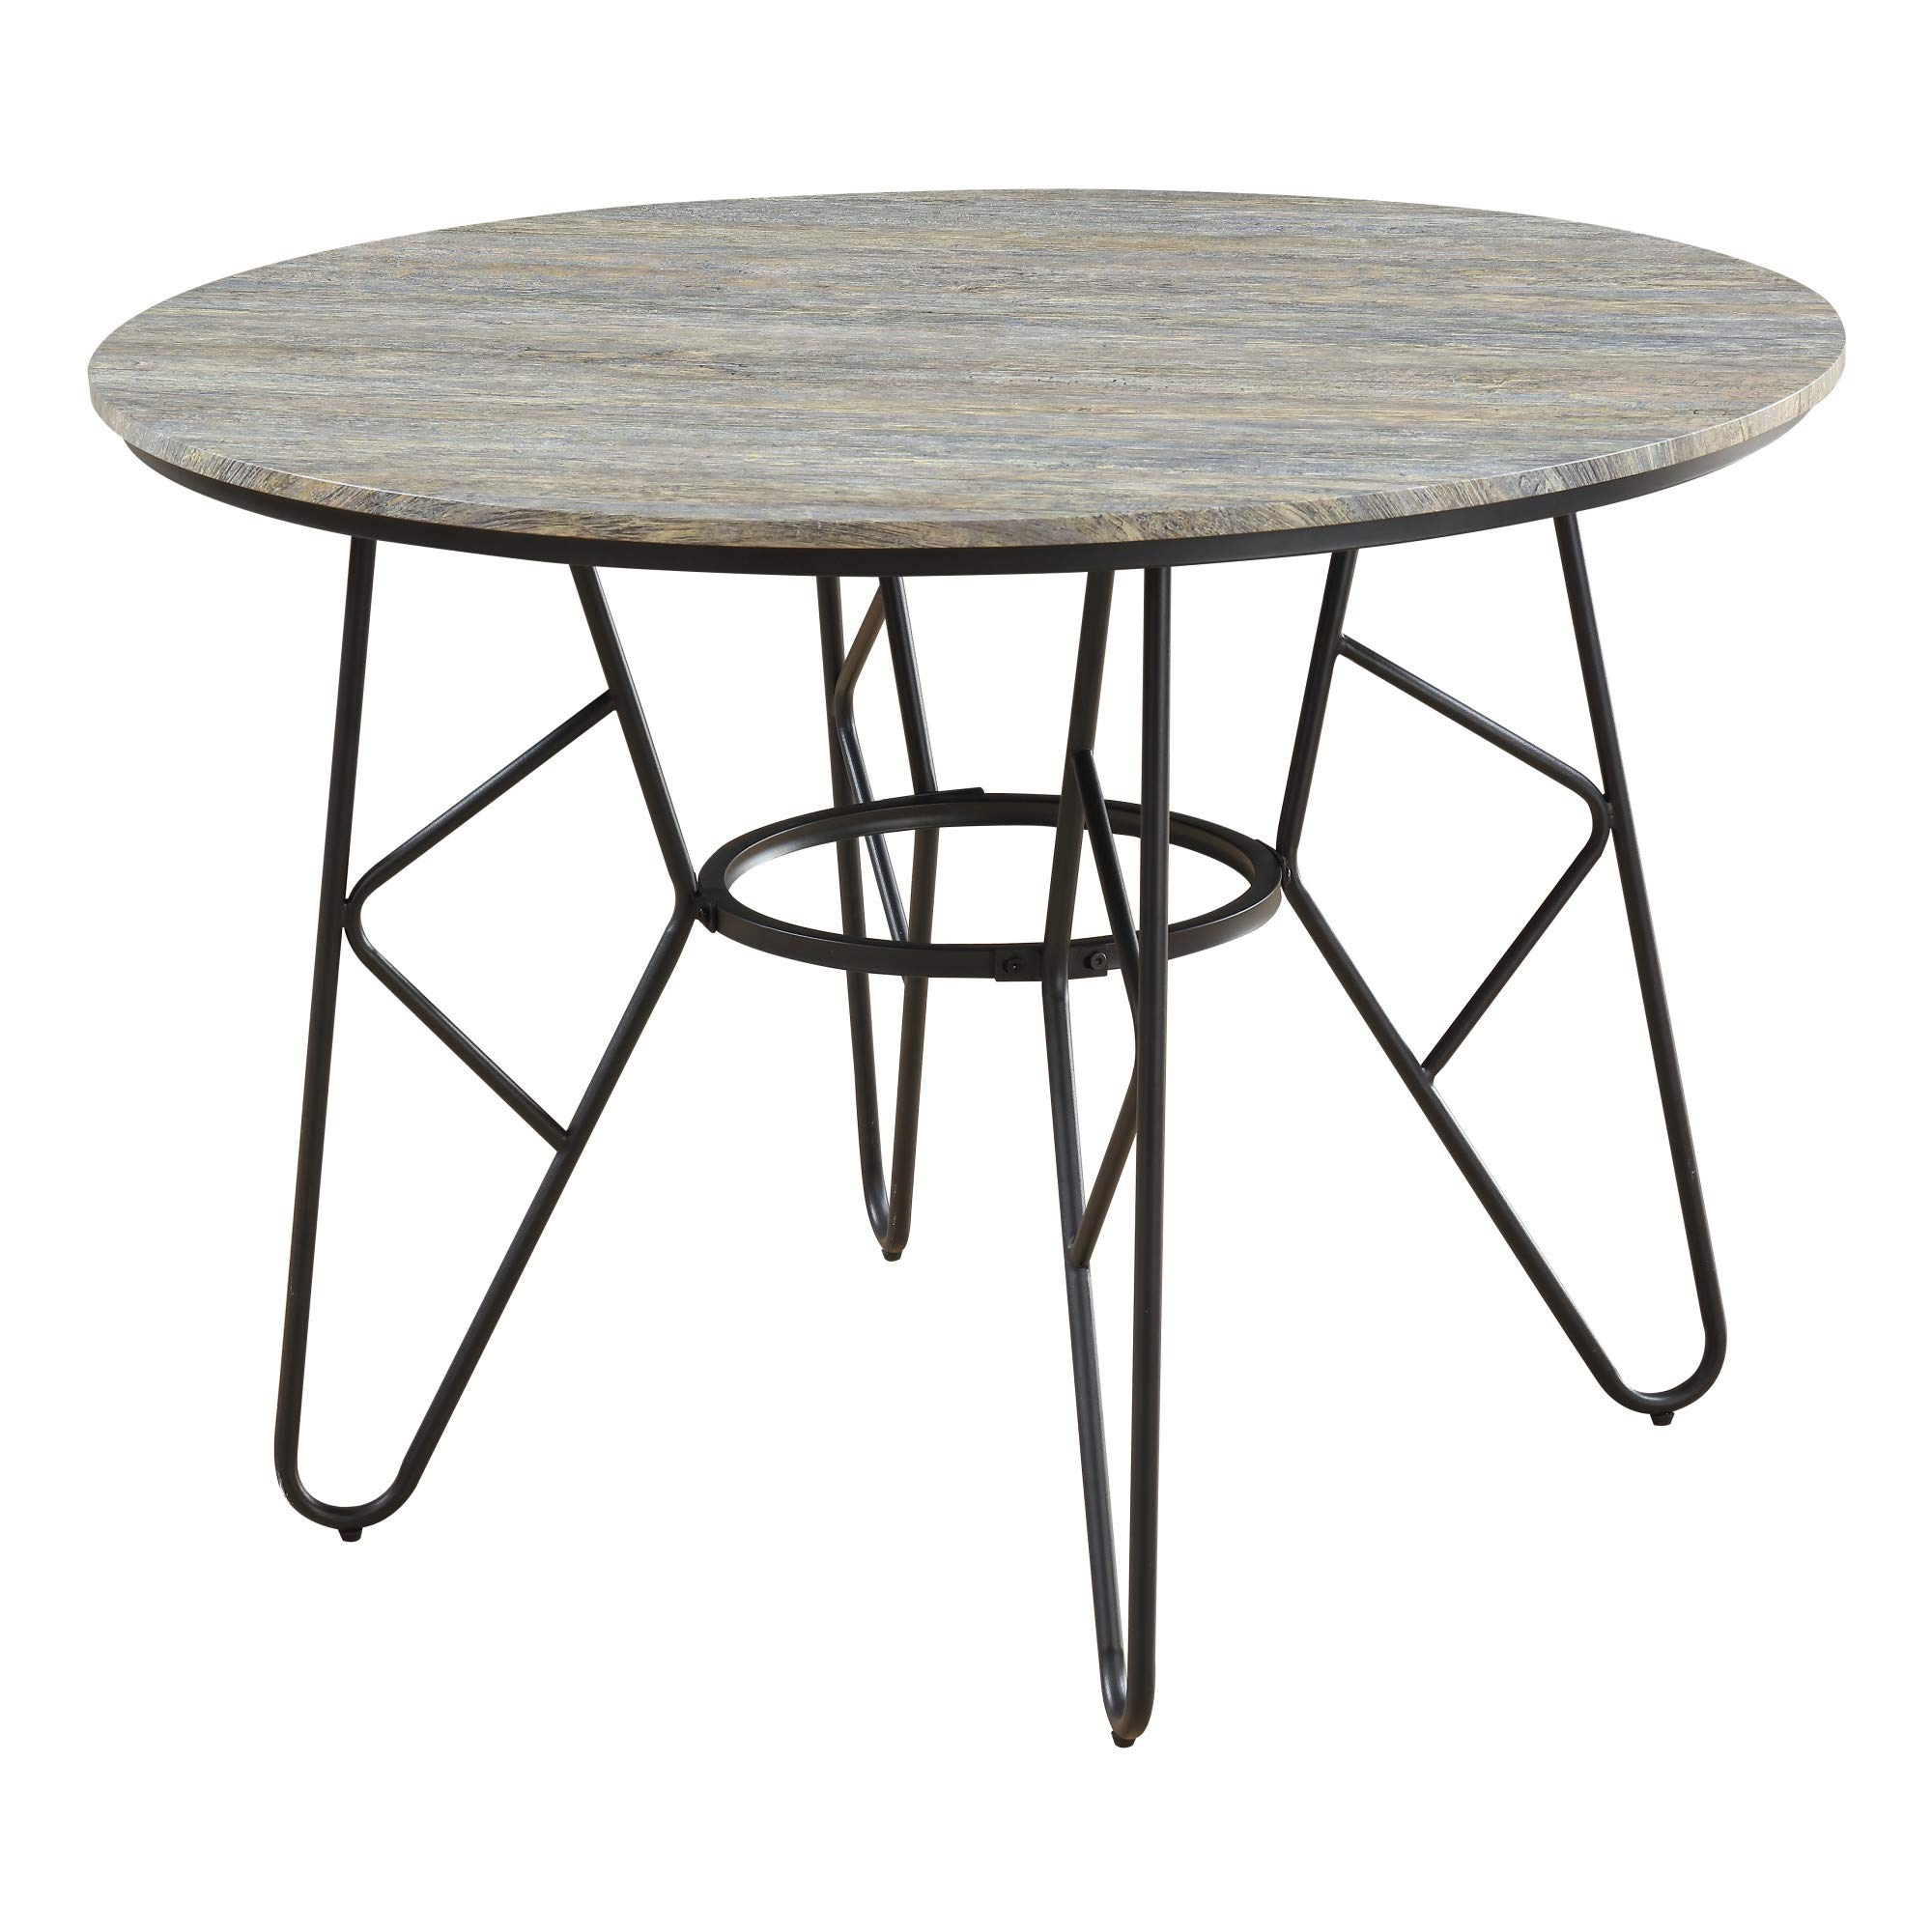 Jurcek 42'' Round Dining Table in Gray Brindle with Round Tabletop And Metal Base, by Artum Hill by Artum Hill (Image #1)